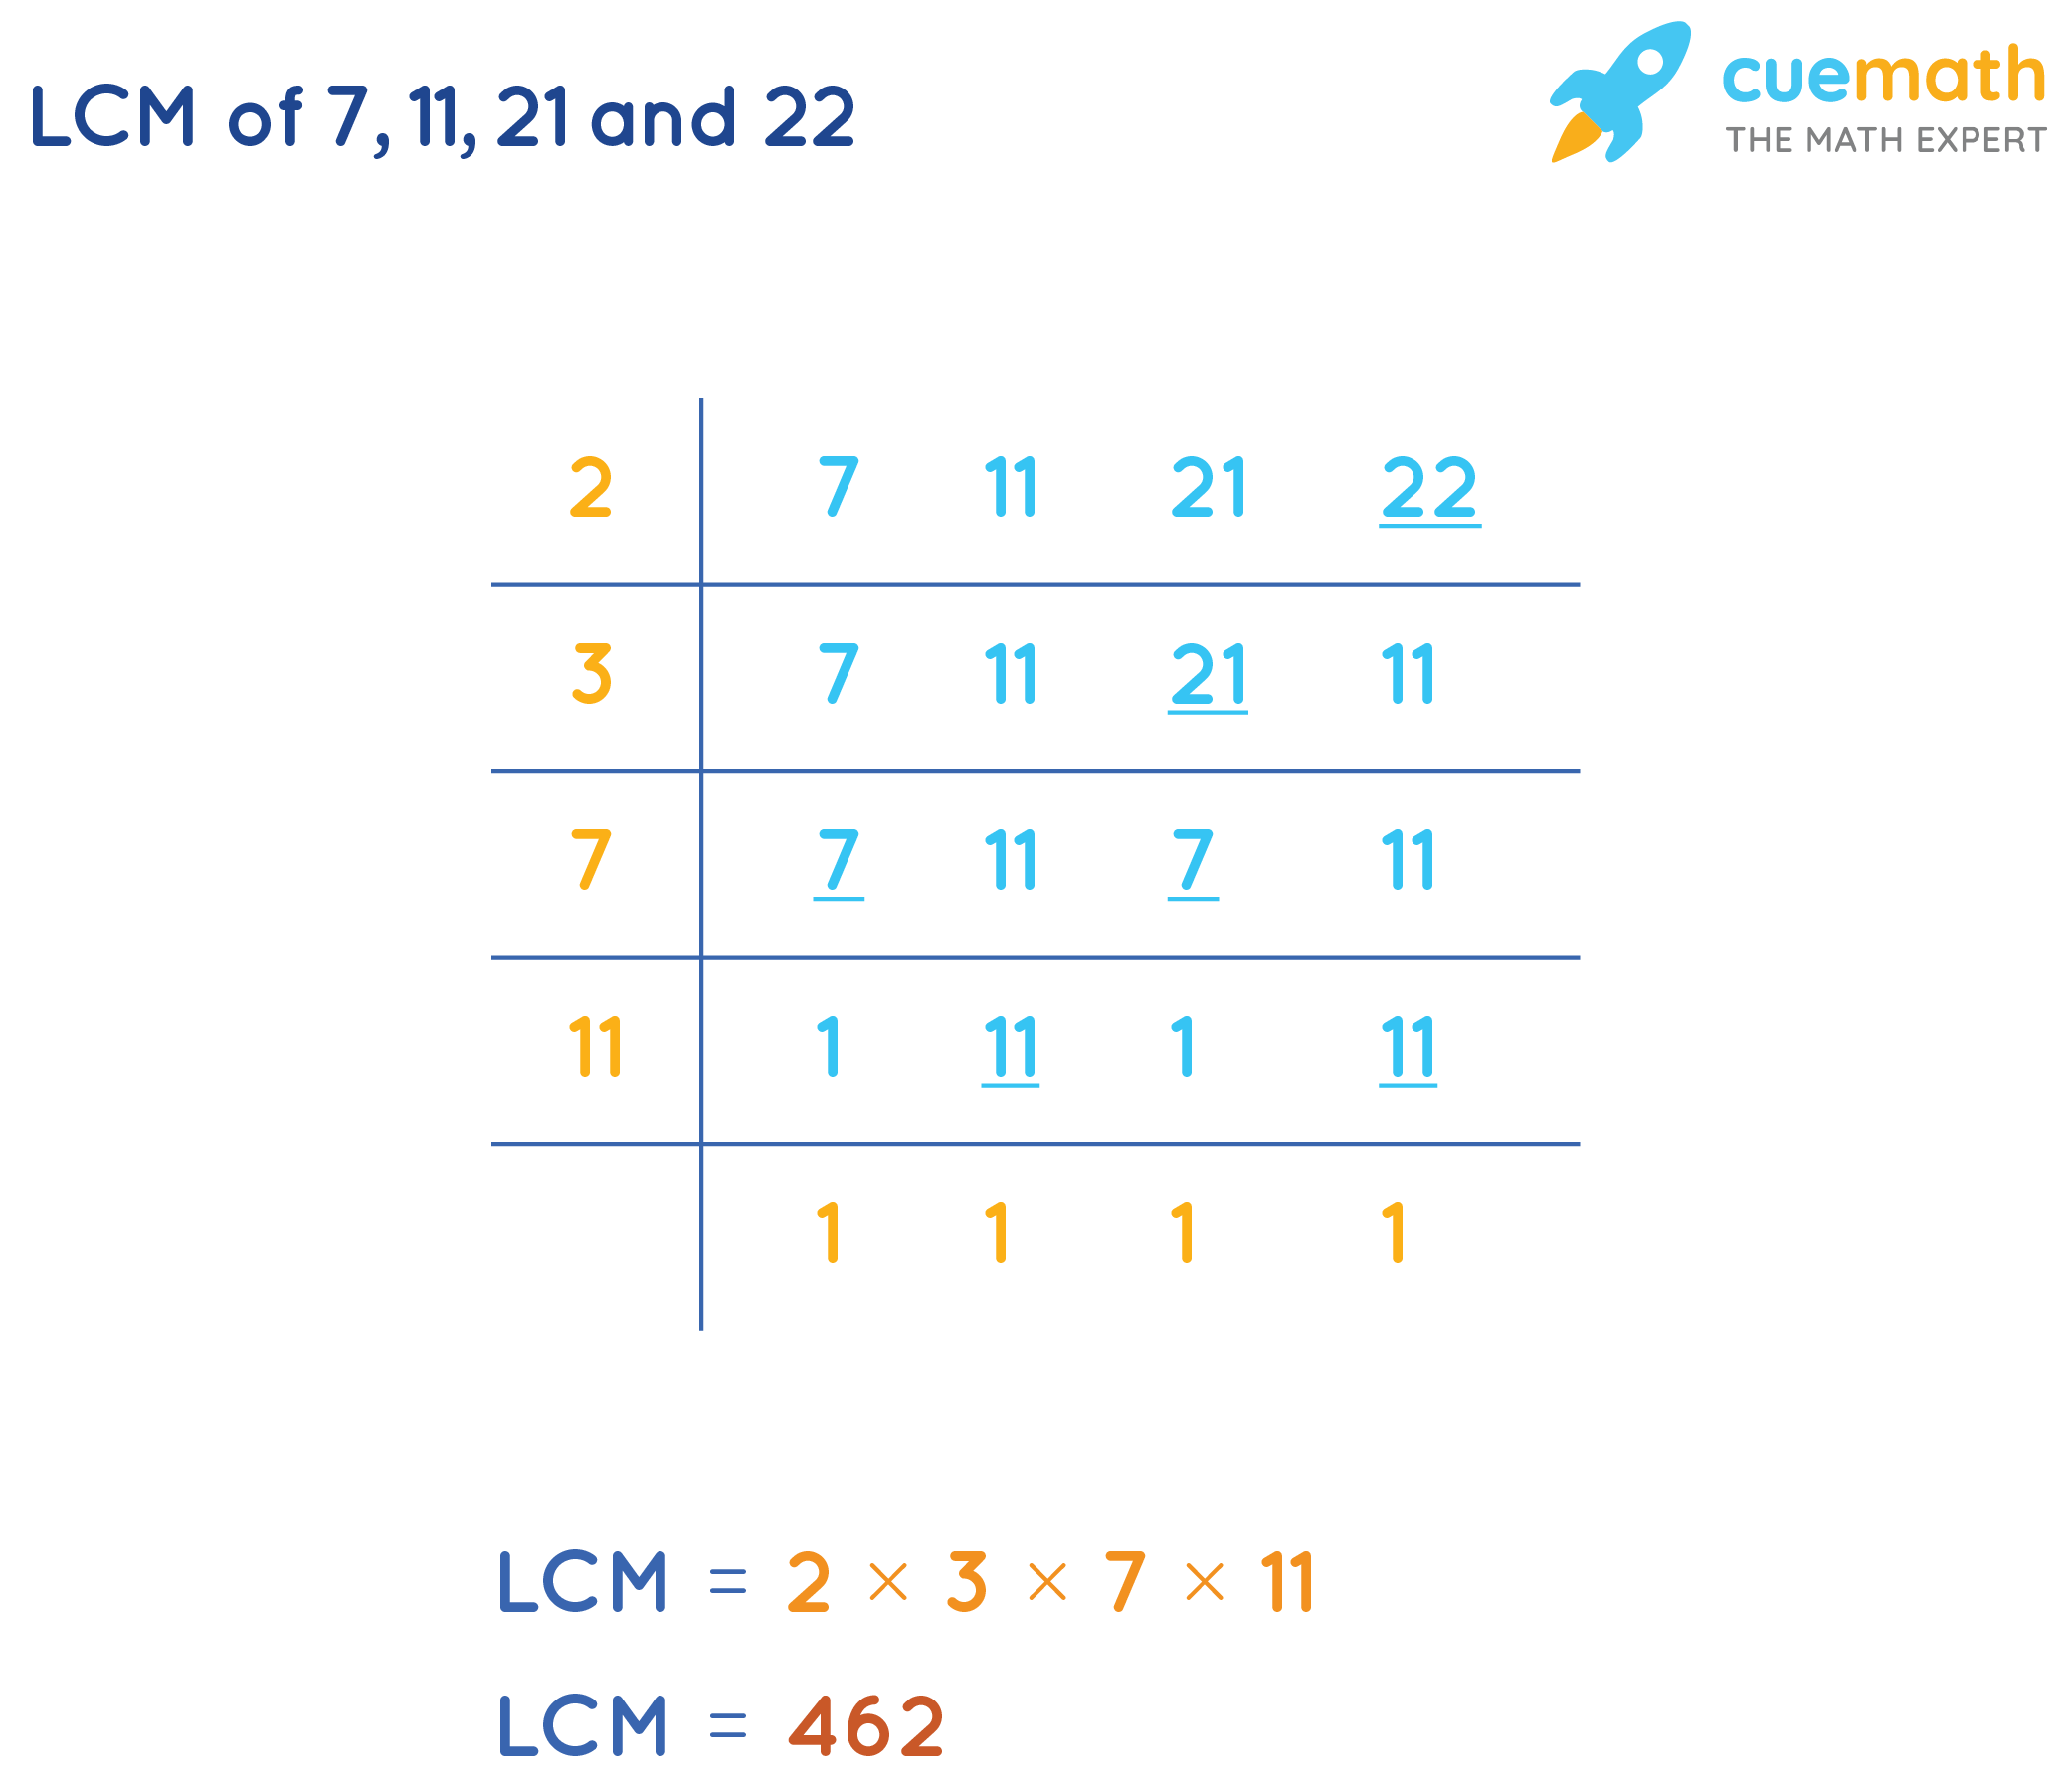 LCM of 7 , 11 21 and 22